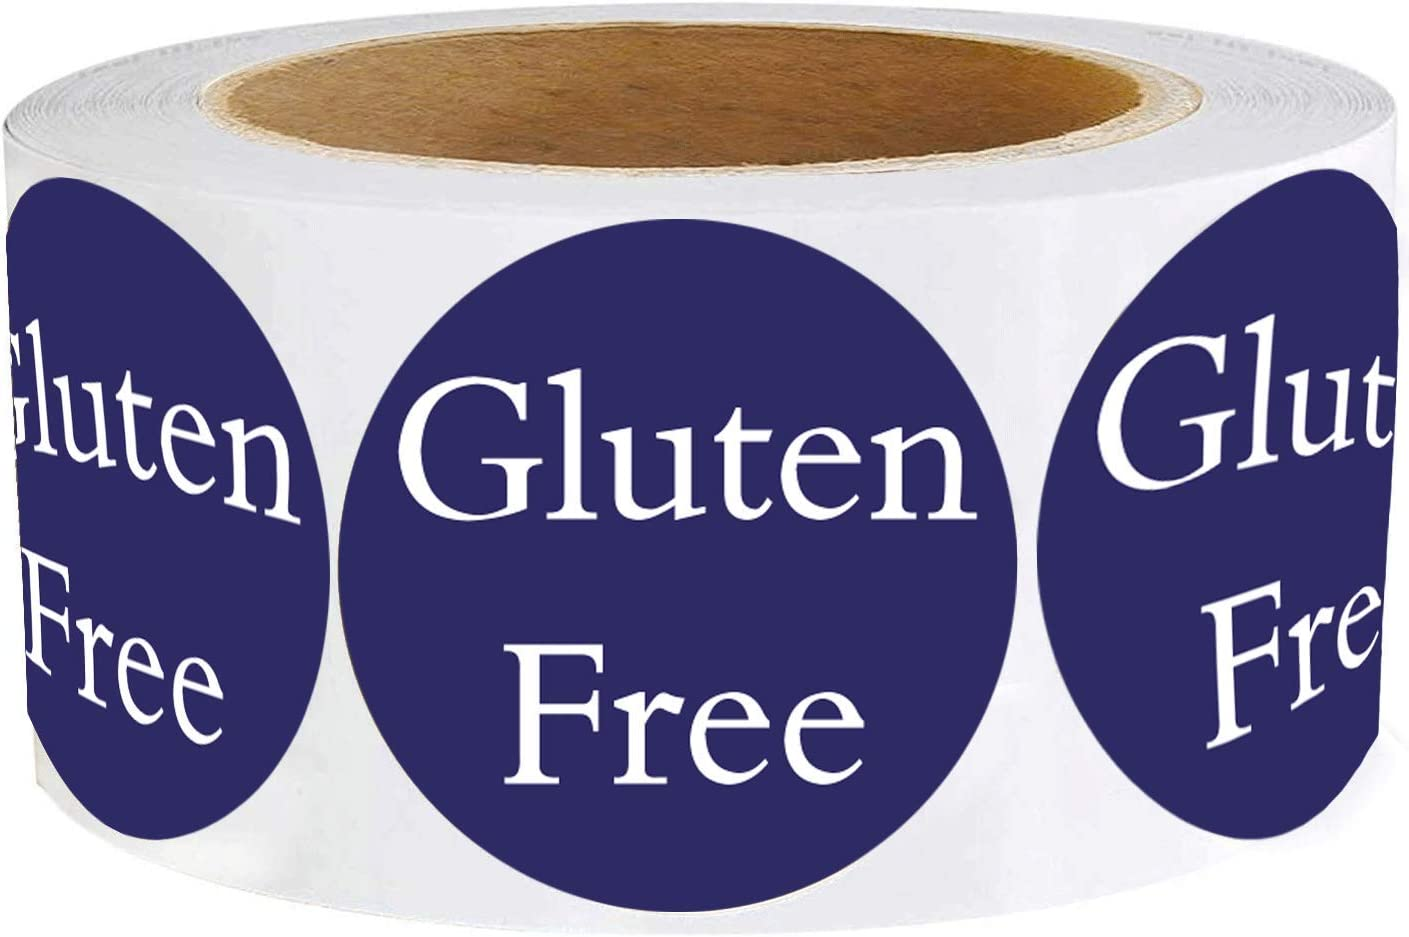 Gluten Free Labels 1.5 Inch - Food Rotation Labels 500 Adhesive Round Circle Dot Stickers